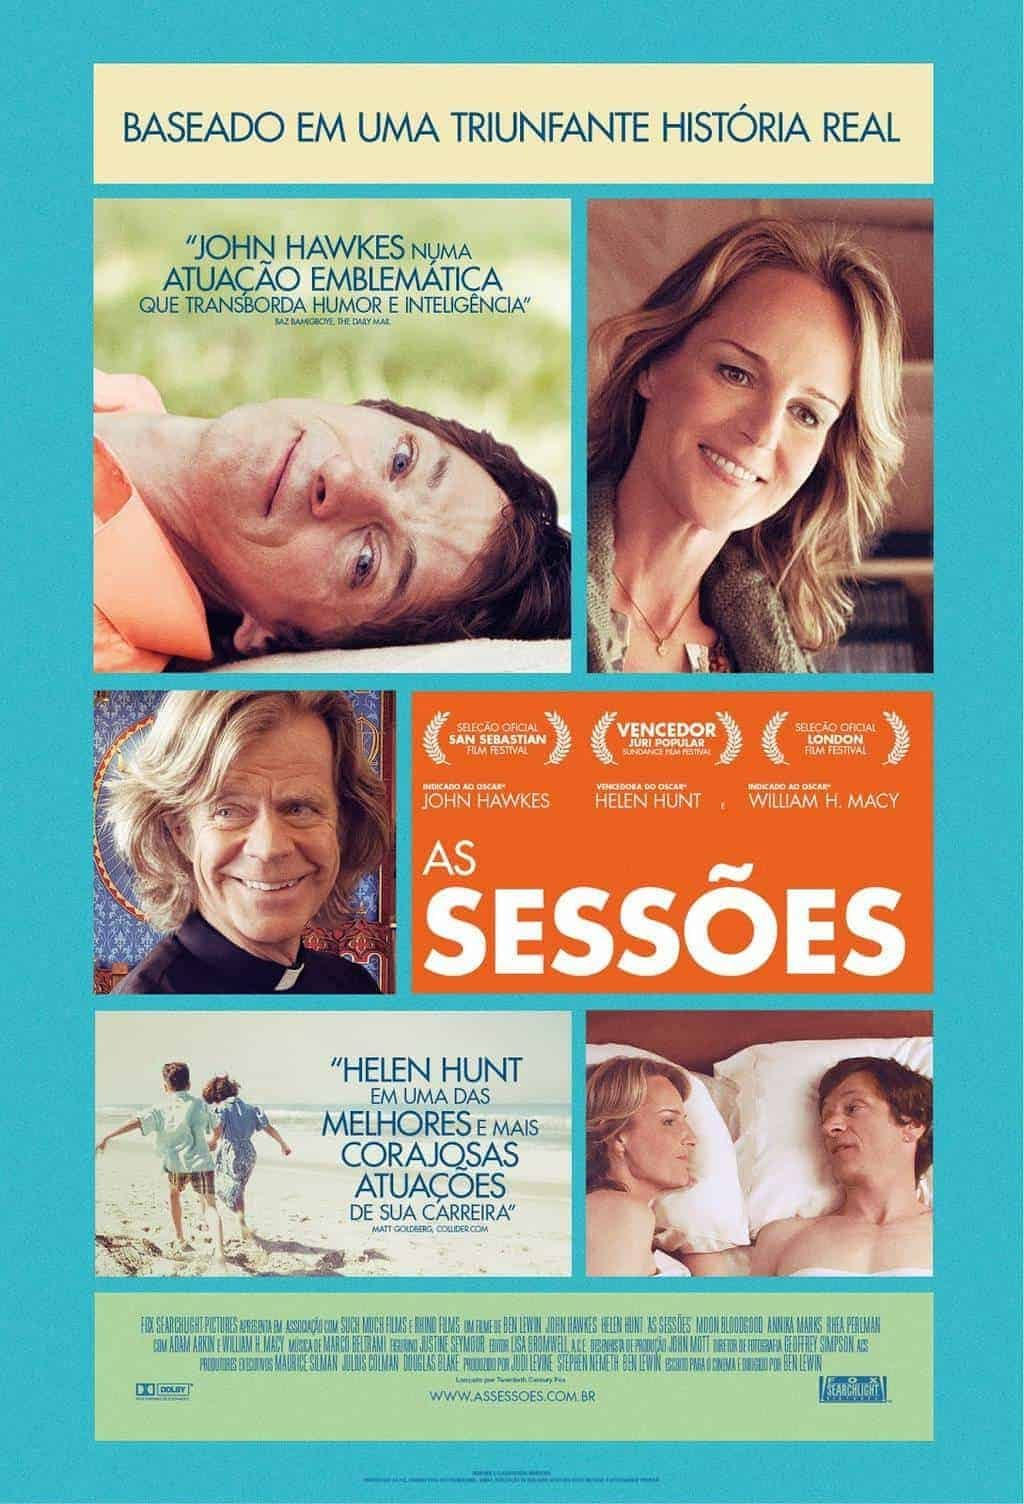 as-sessoes-the-sessions-1-7688755-6425390-7354331